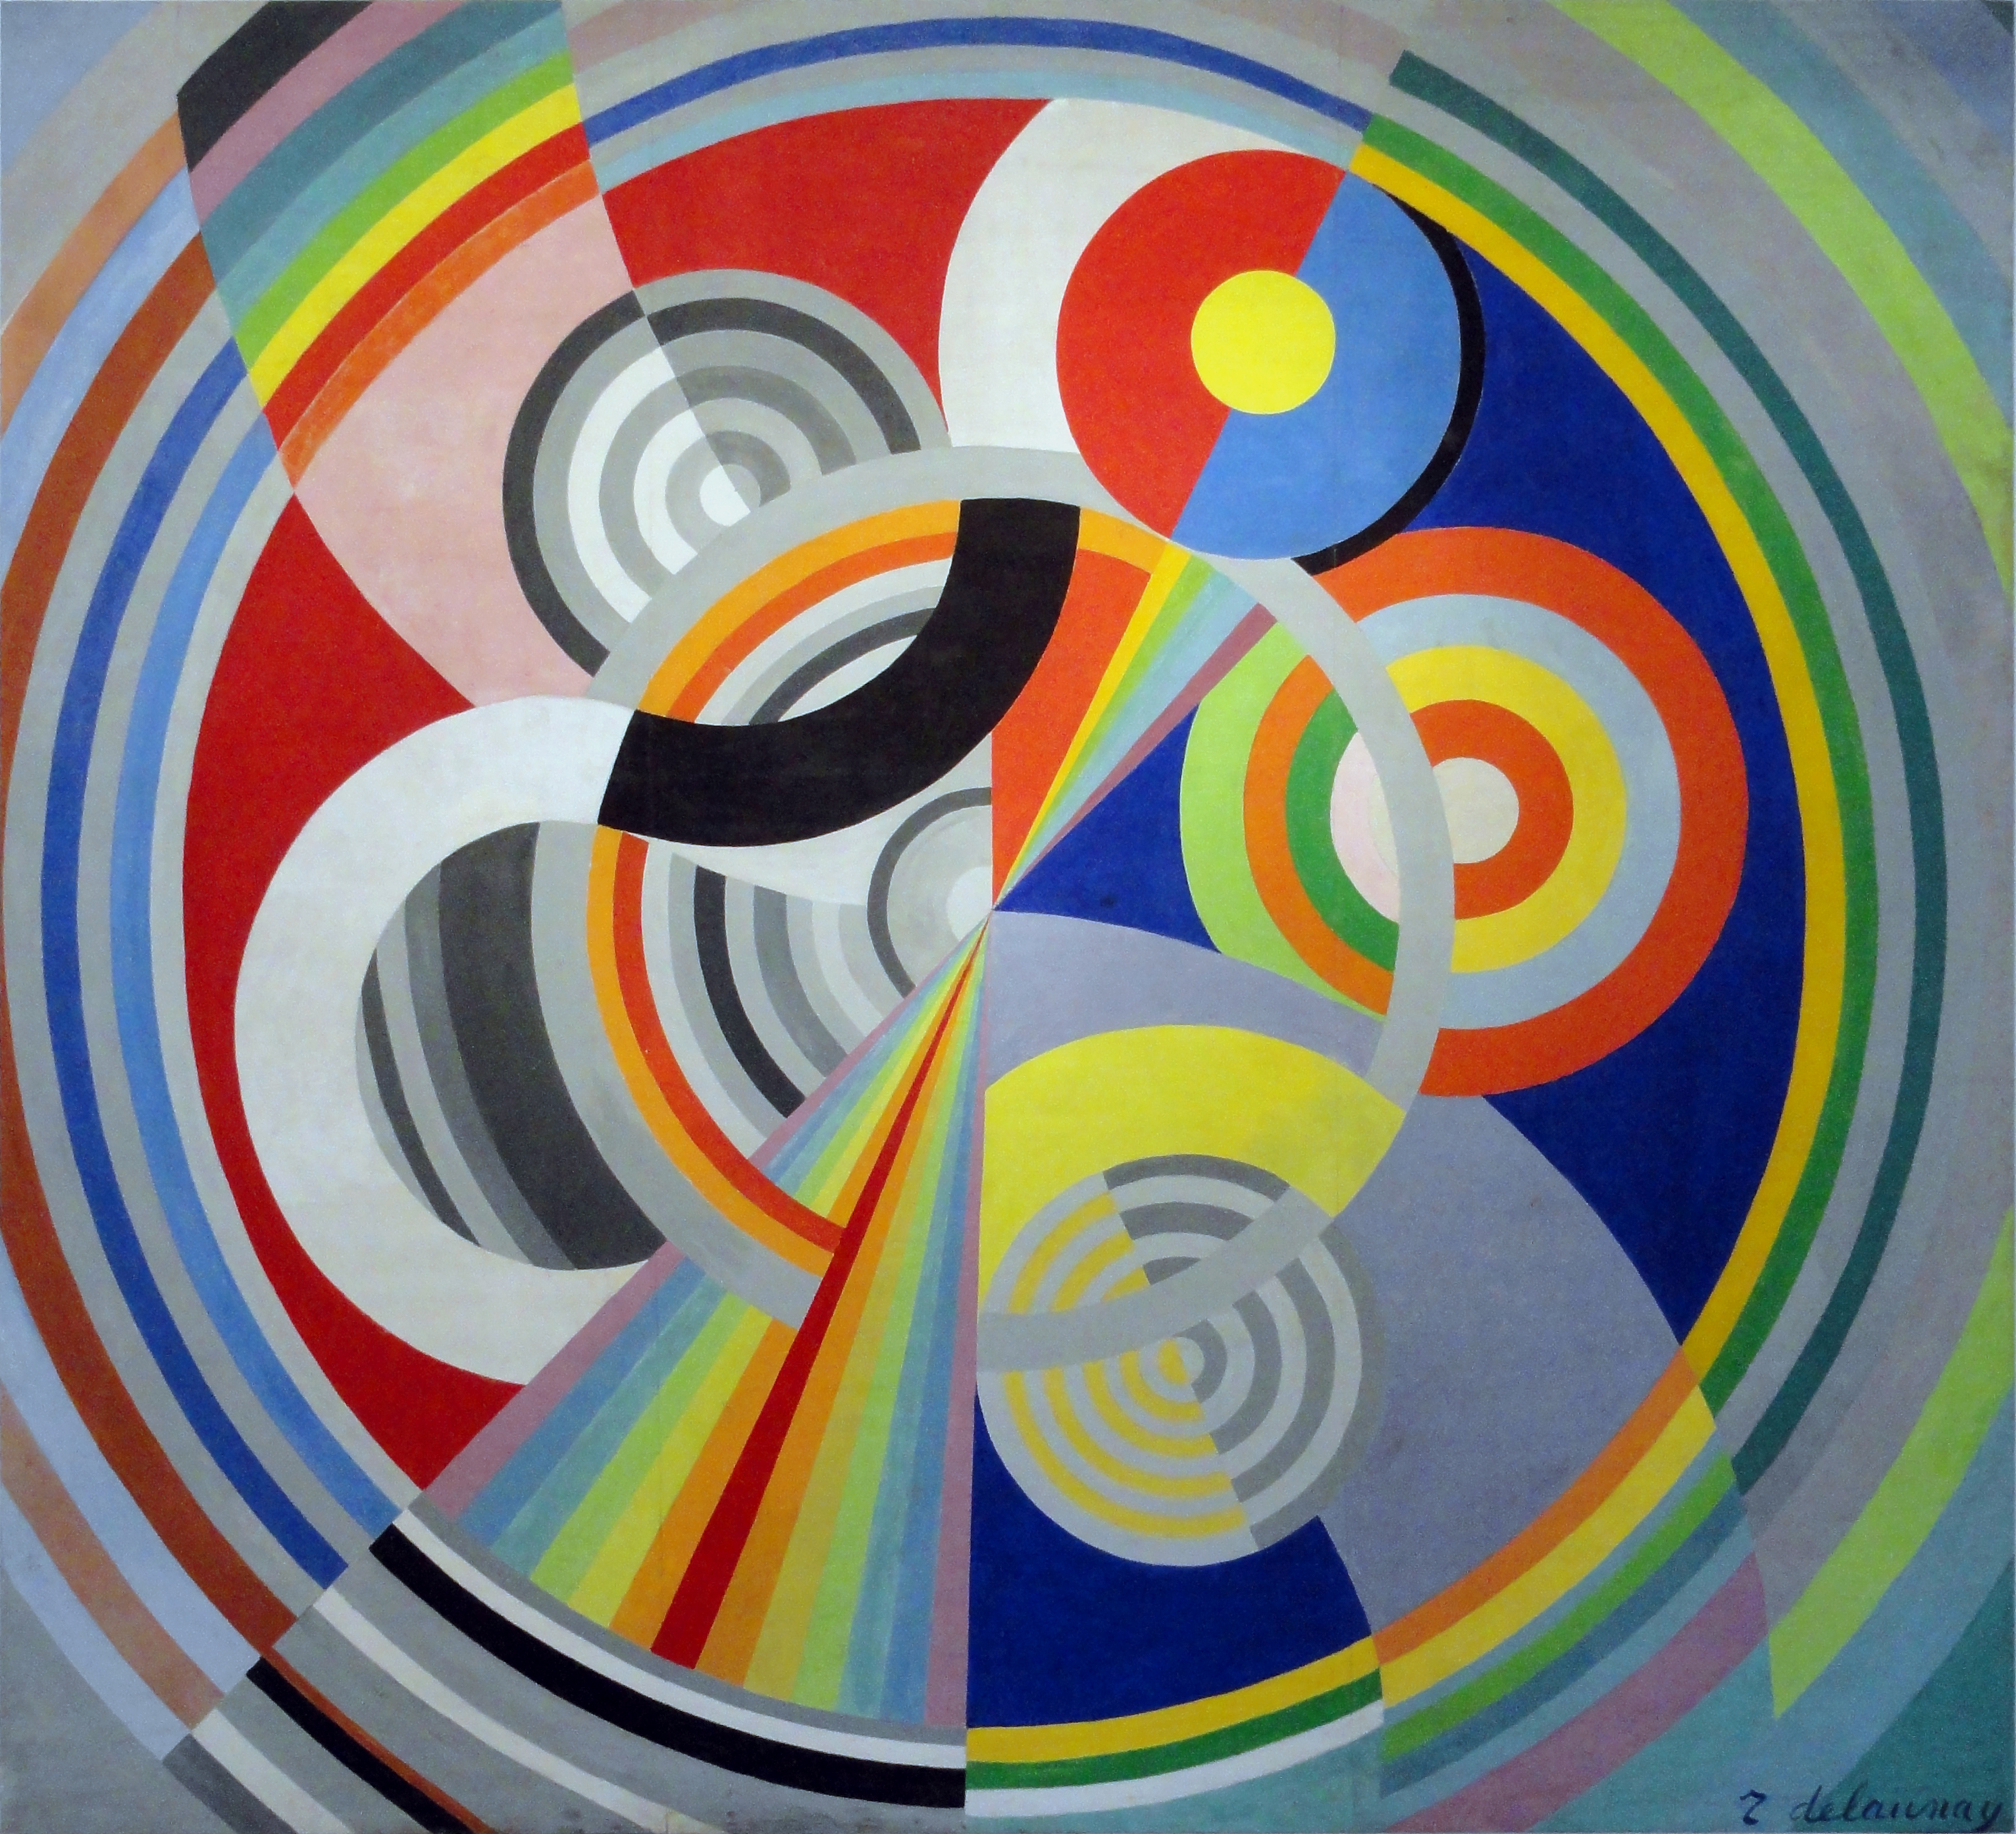 Robert delaunay alchetron the free social encyclopedia for Decoration des salons